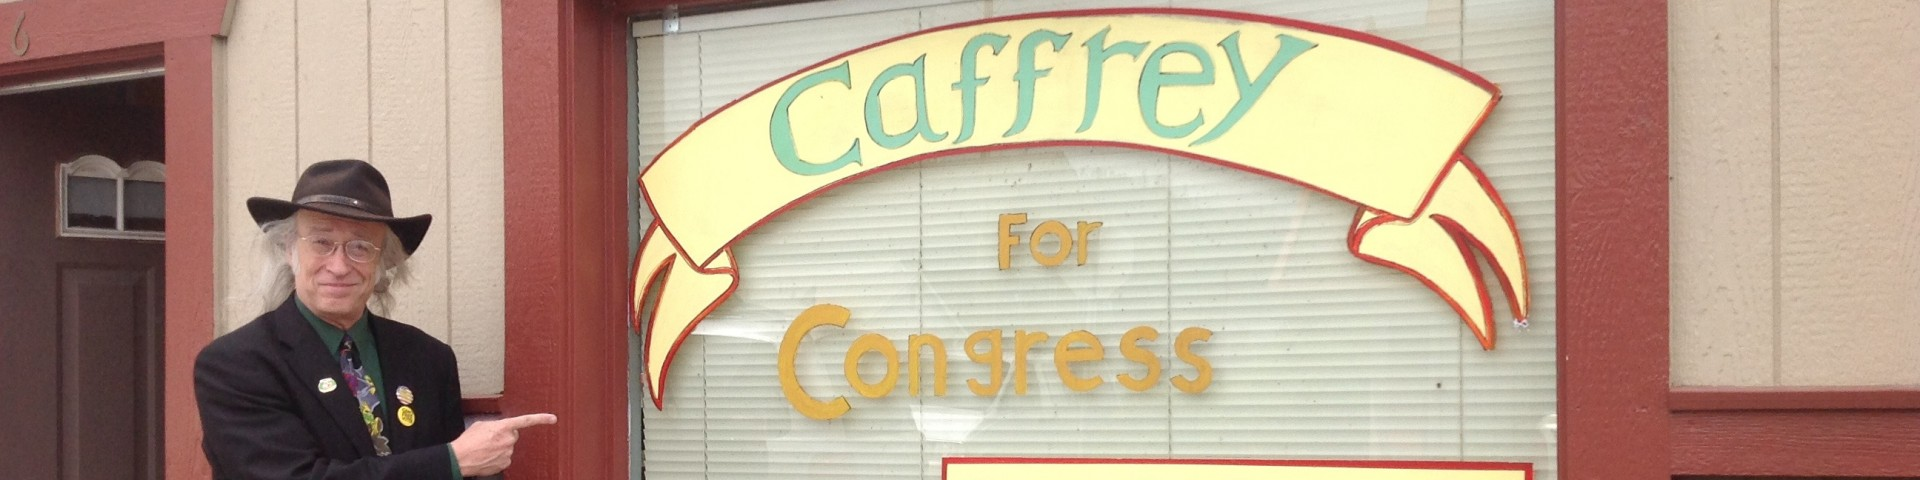 In 2018 Elect to Congress Green Democrat Andy Caffrey!